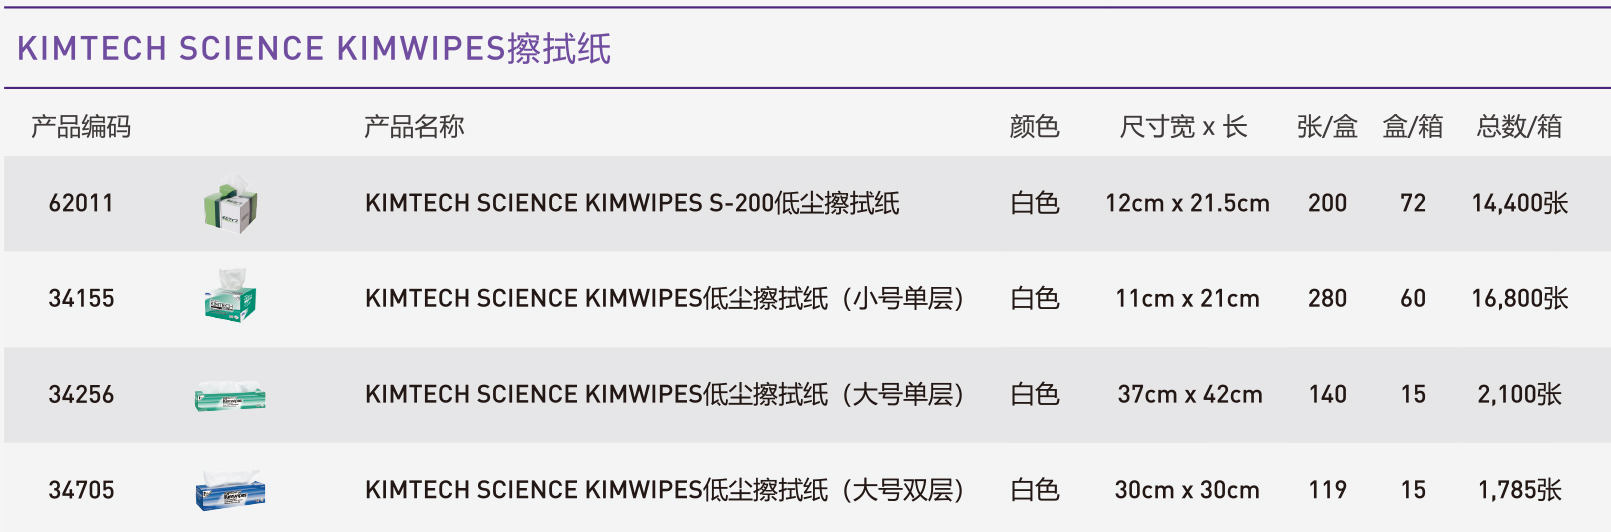 KIMTECH SCIENCE KIMWIPES擦拭纸